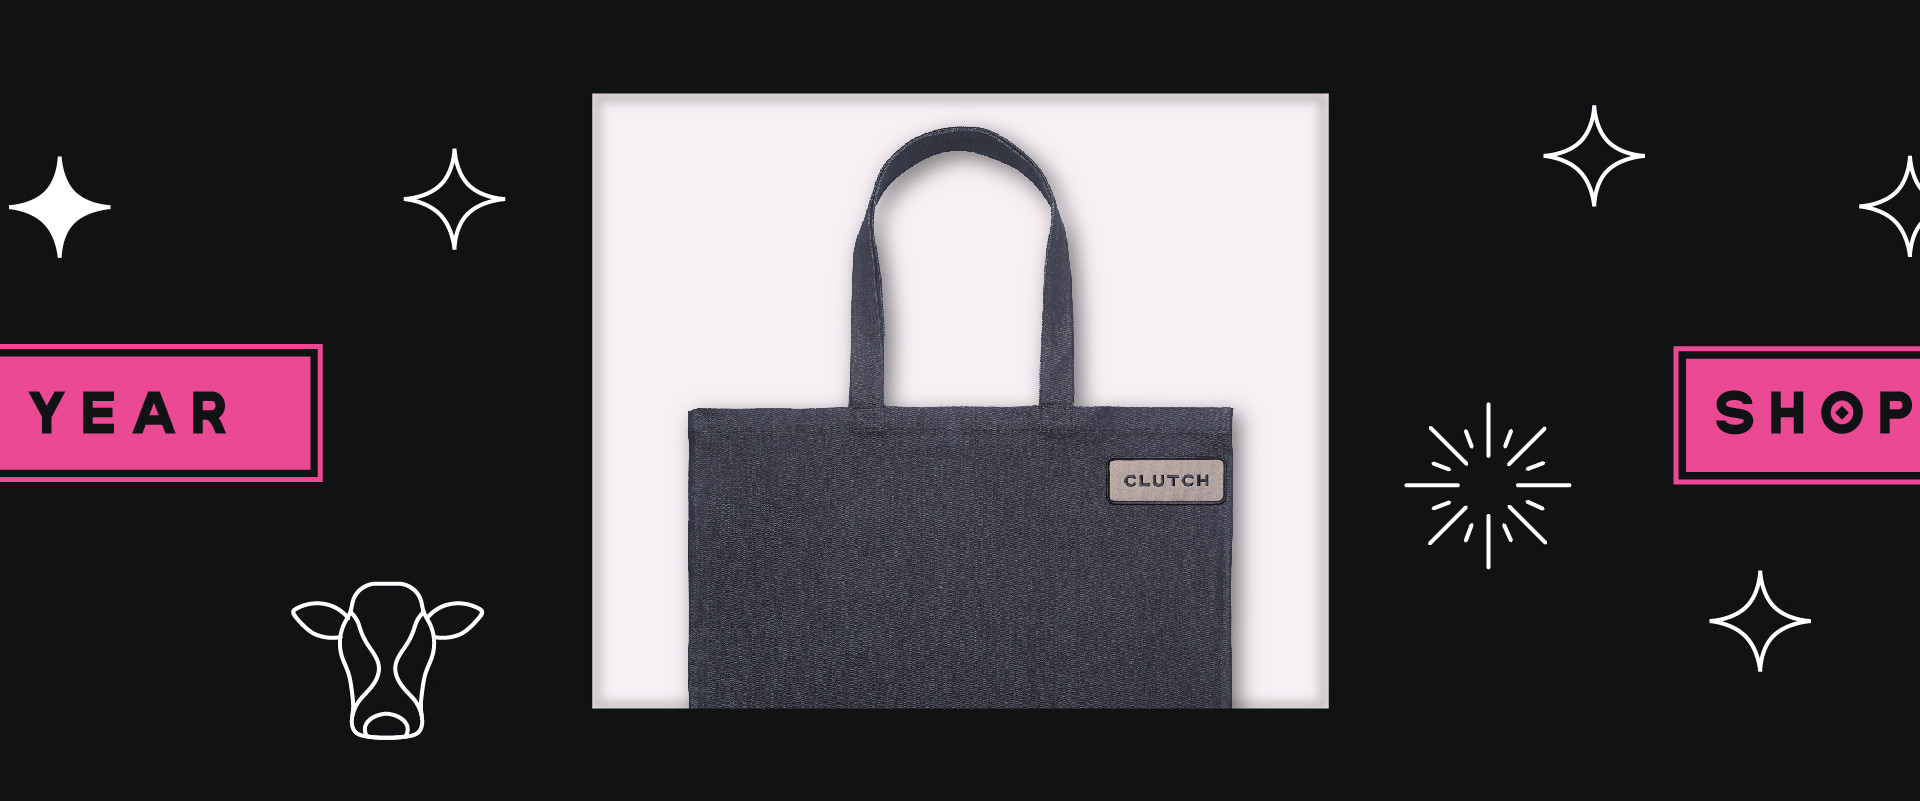 New Year's Campaign Tote